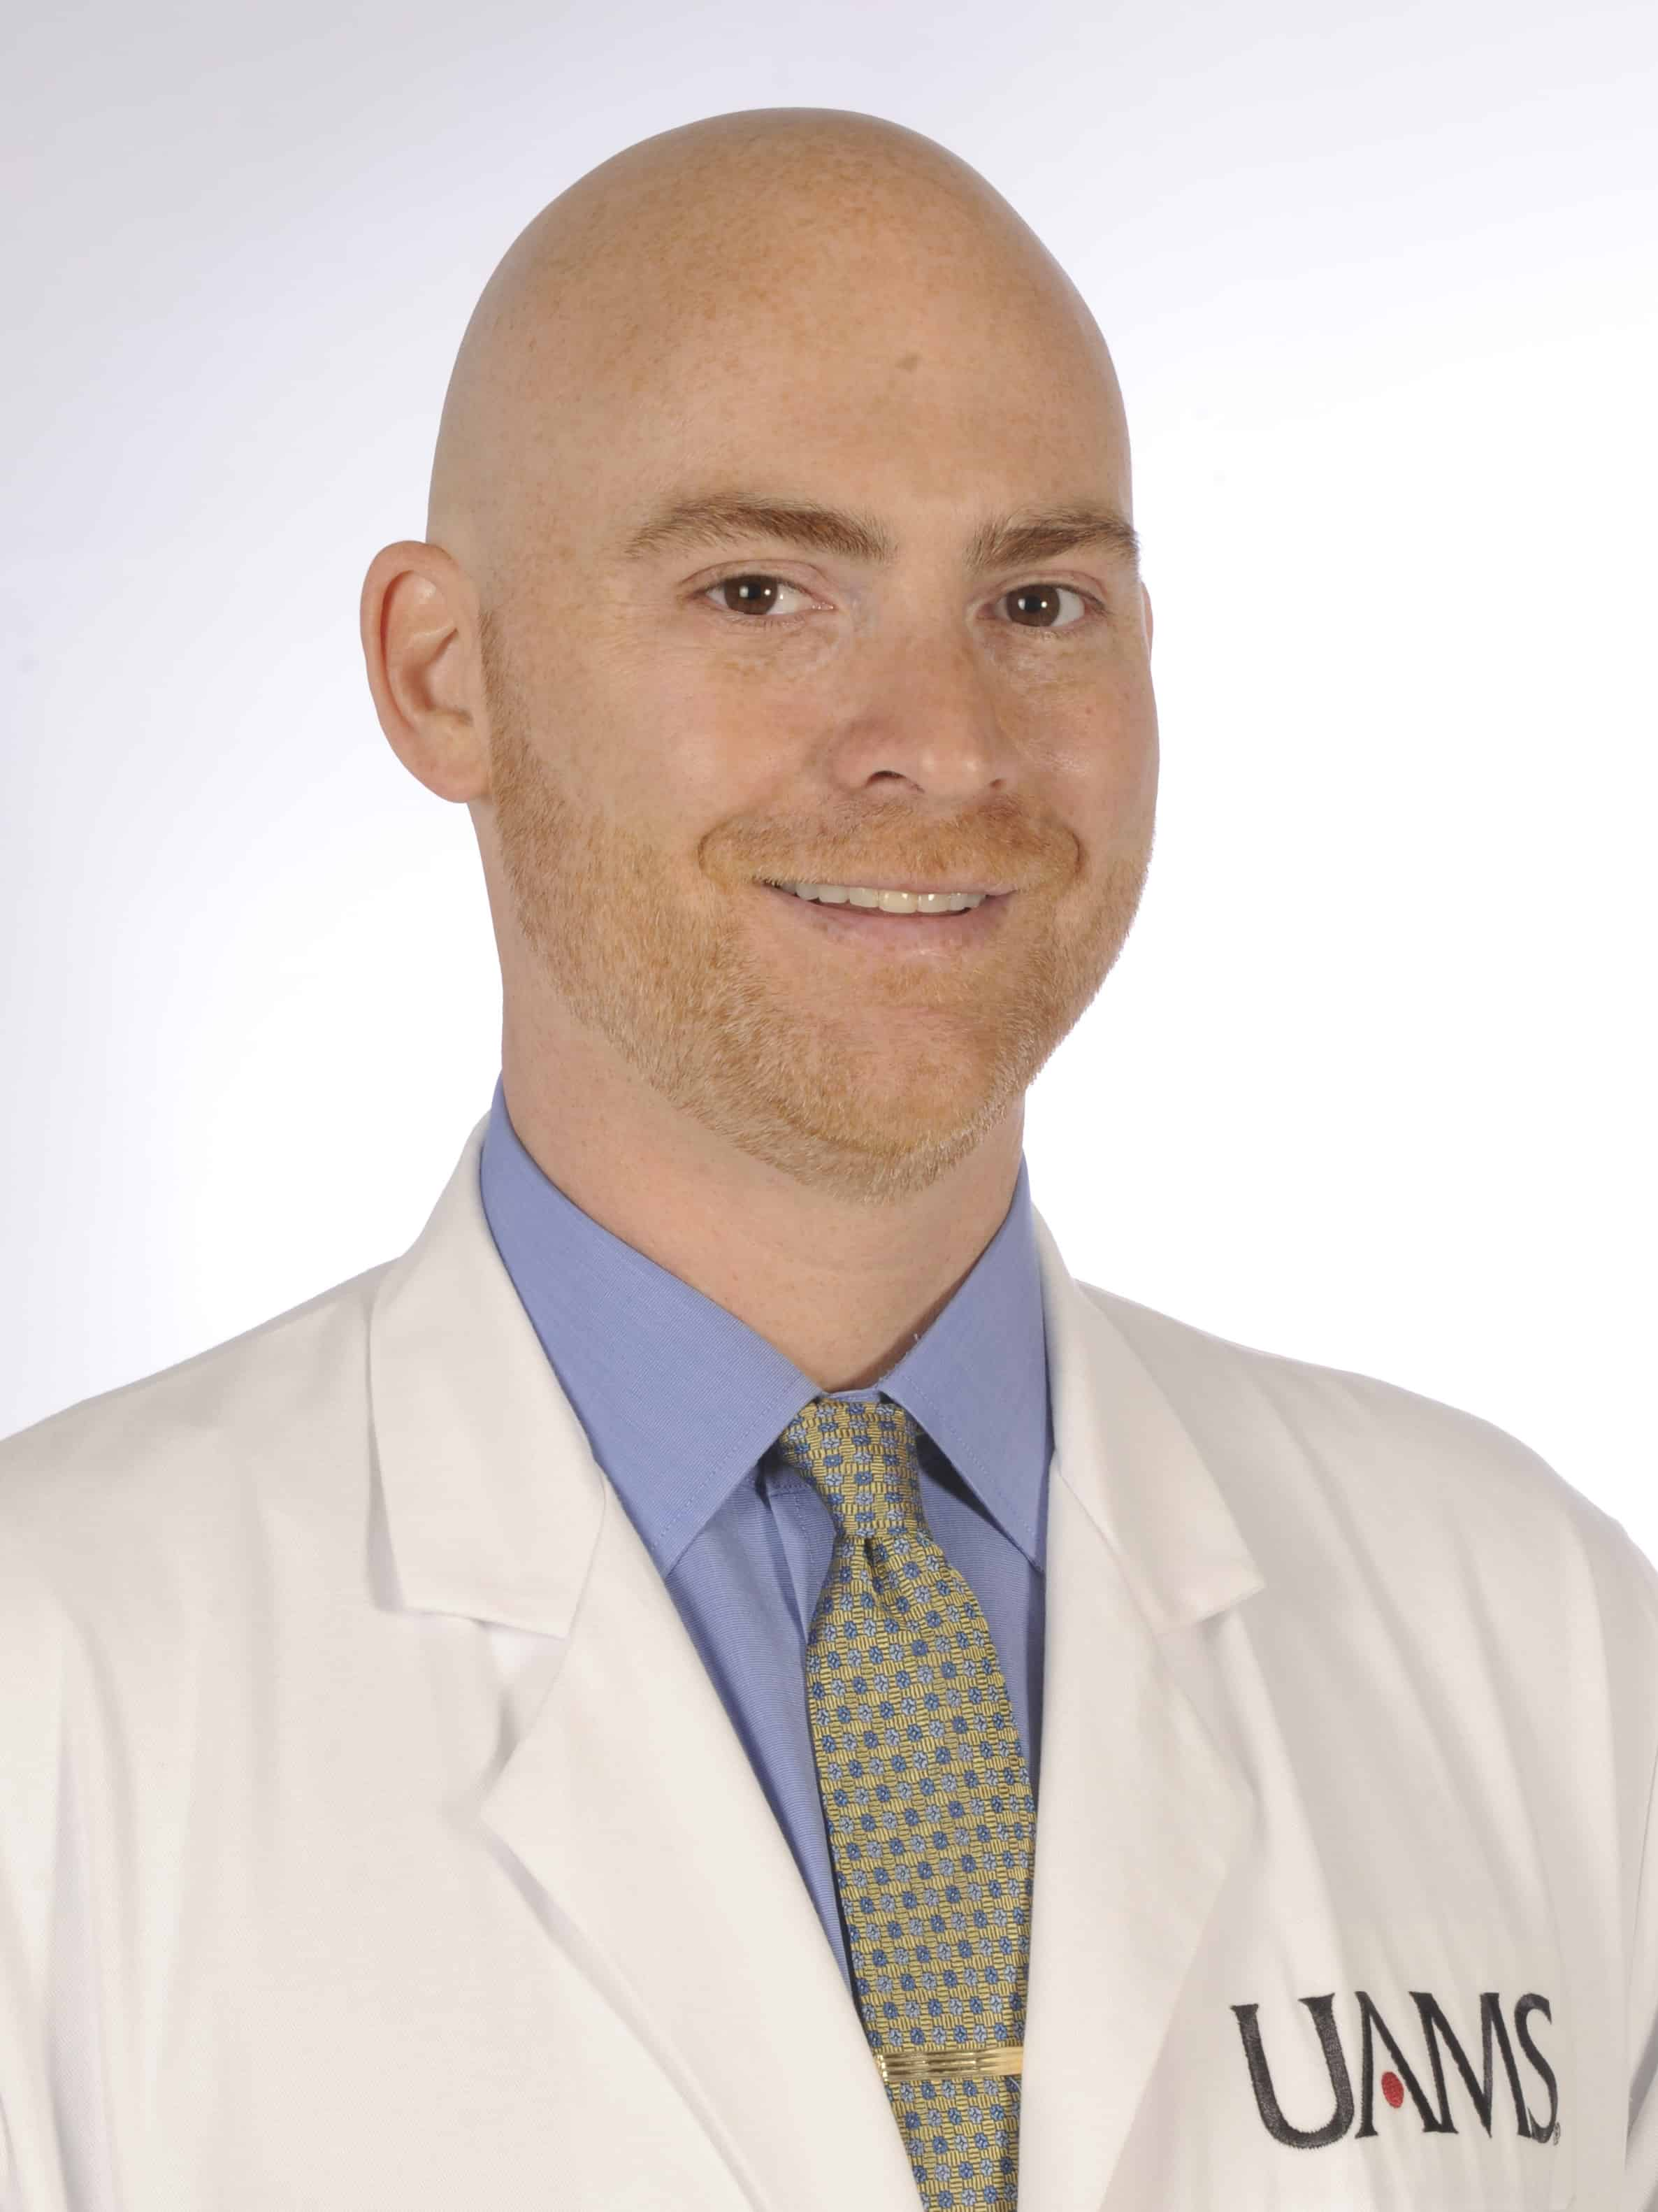 Graham Strub M D Ph D Joins Department Of Otolaryngology Uams Department Of Otolaryngology Head And Neck Surgery